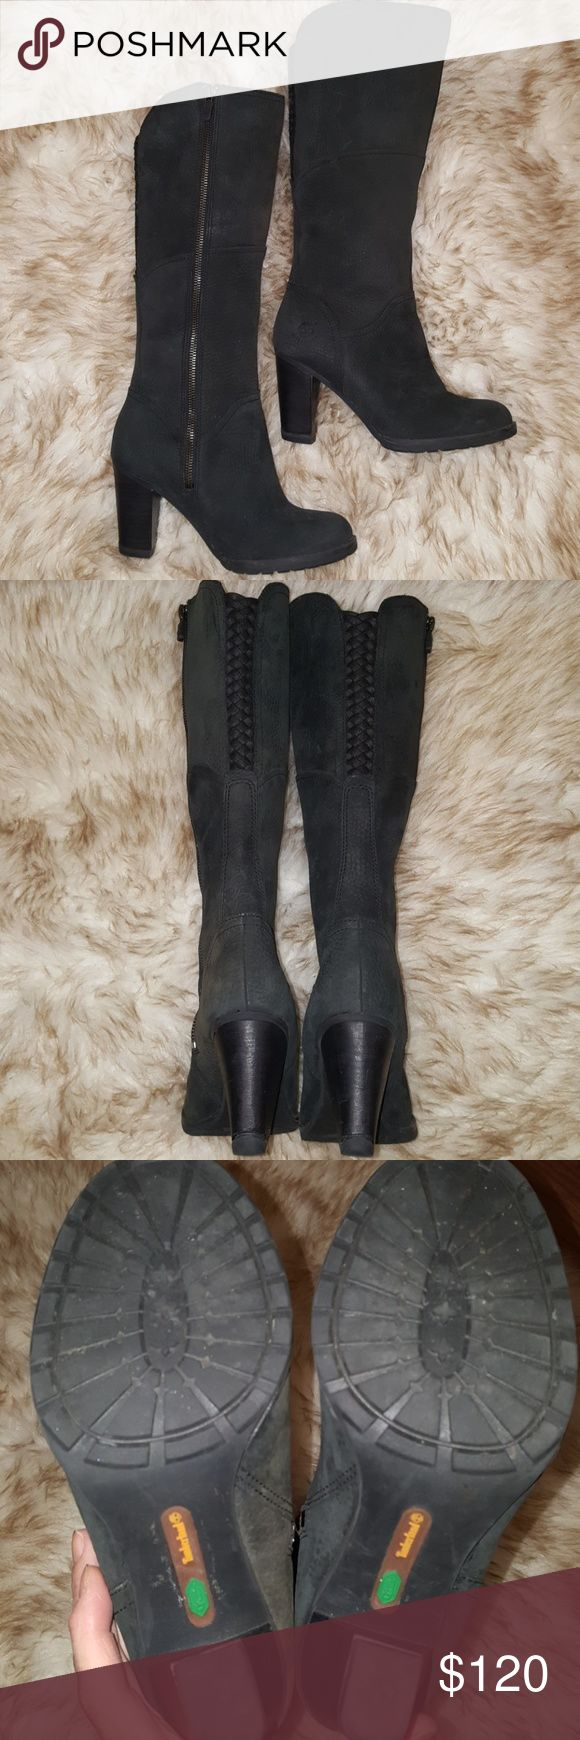 HOT Timberland Earthkeepers  Boots 😍😎💥 Timberland Earthkeepers Stratham Heights Tall Black Waterproof Boots. Comfortable pretty patterned lining shown in pic. Stylish crisscross patterned back. Only worn once so in like brand new condition! Sexy boots! Timberland Shoes Heeled Boots